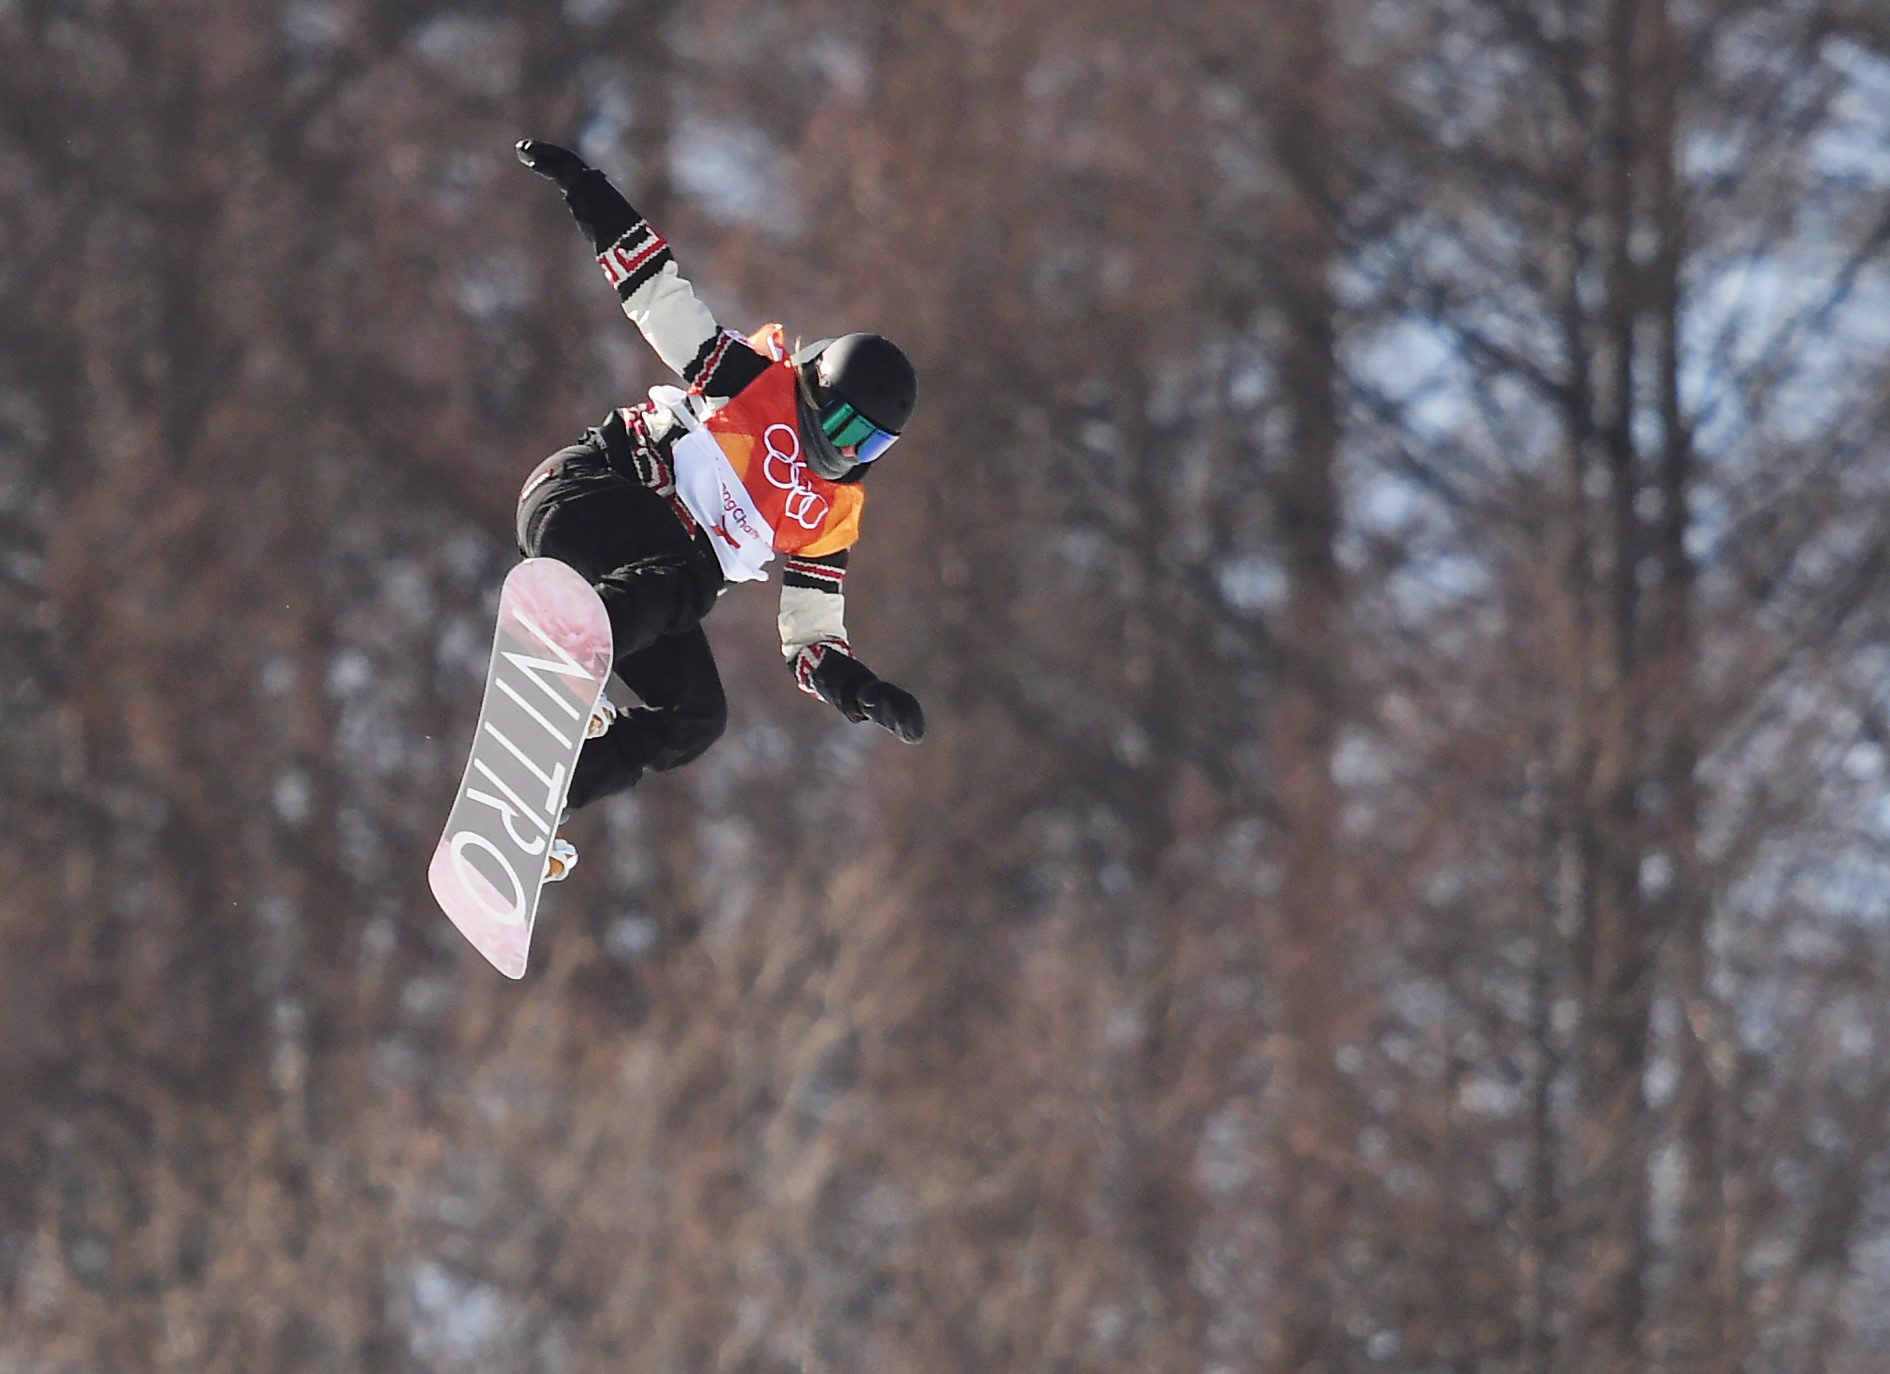 Jamie Anderson wins second Olympic slopestyle gold in dangerous conditions